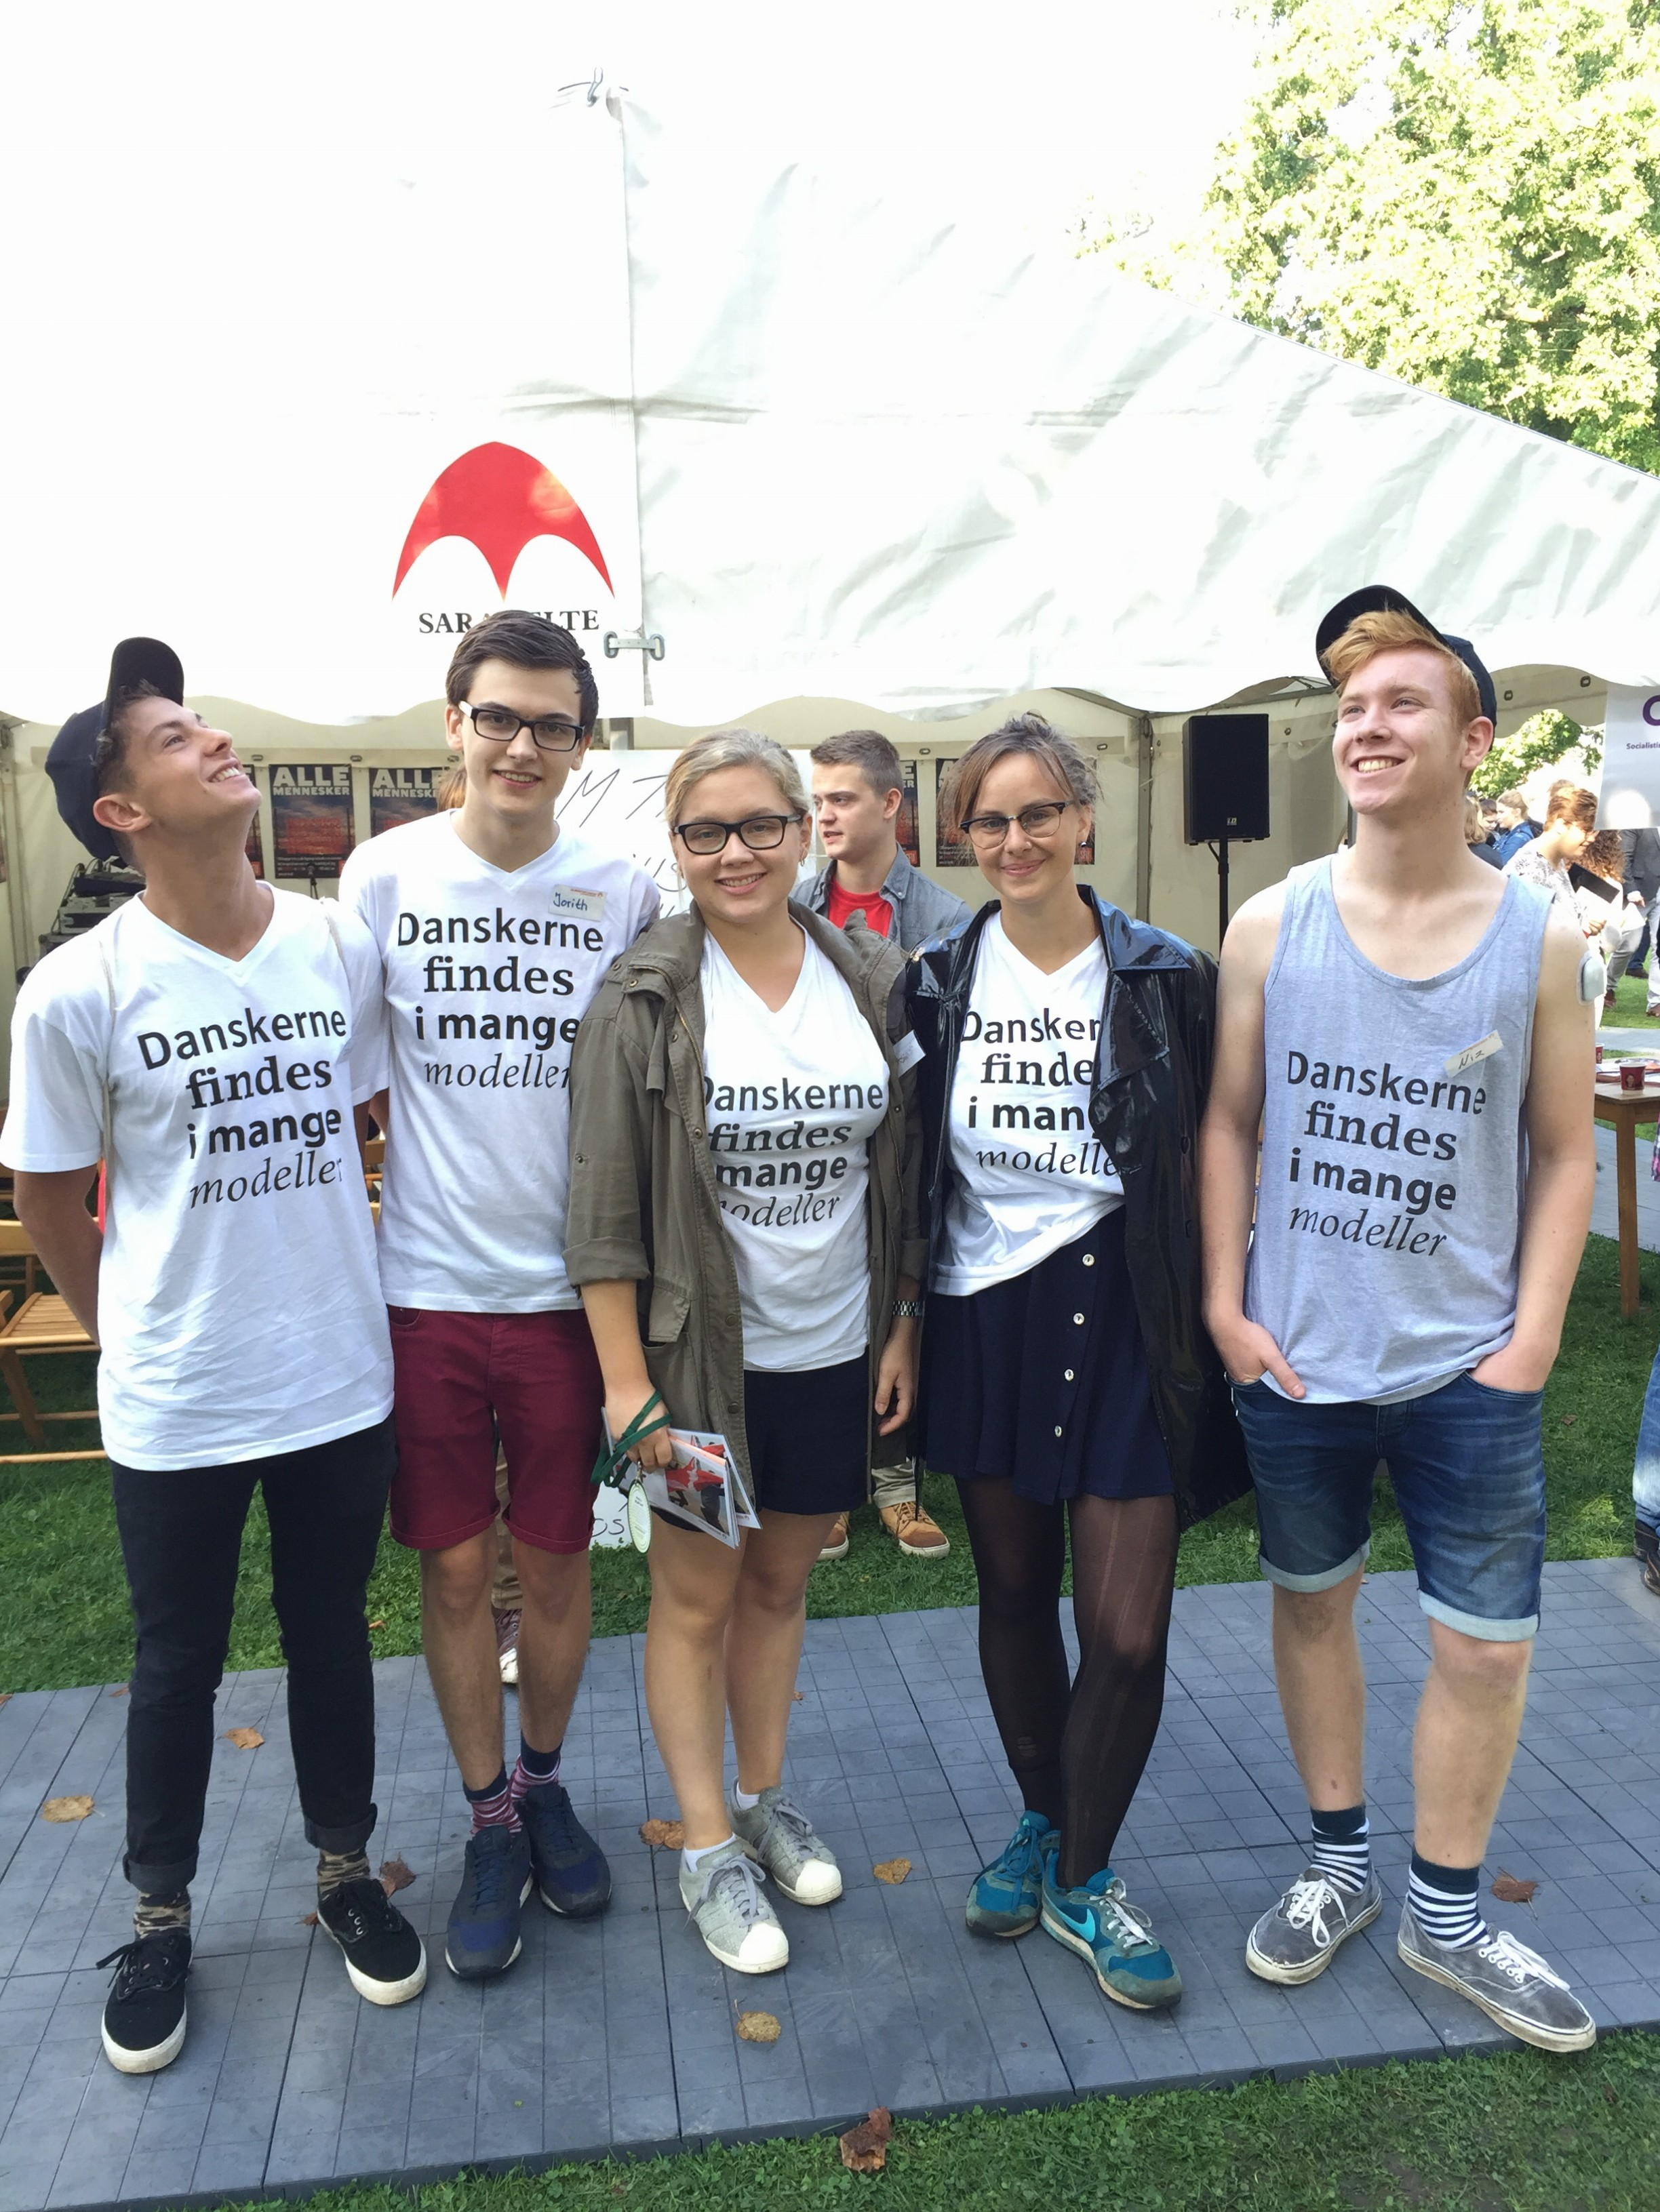 There are 20 Student Ambassadors present at the Democratic Youth Festival. Photo: Simon Vincensen